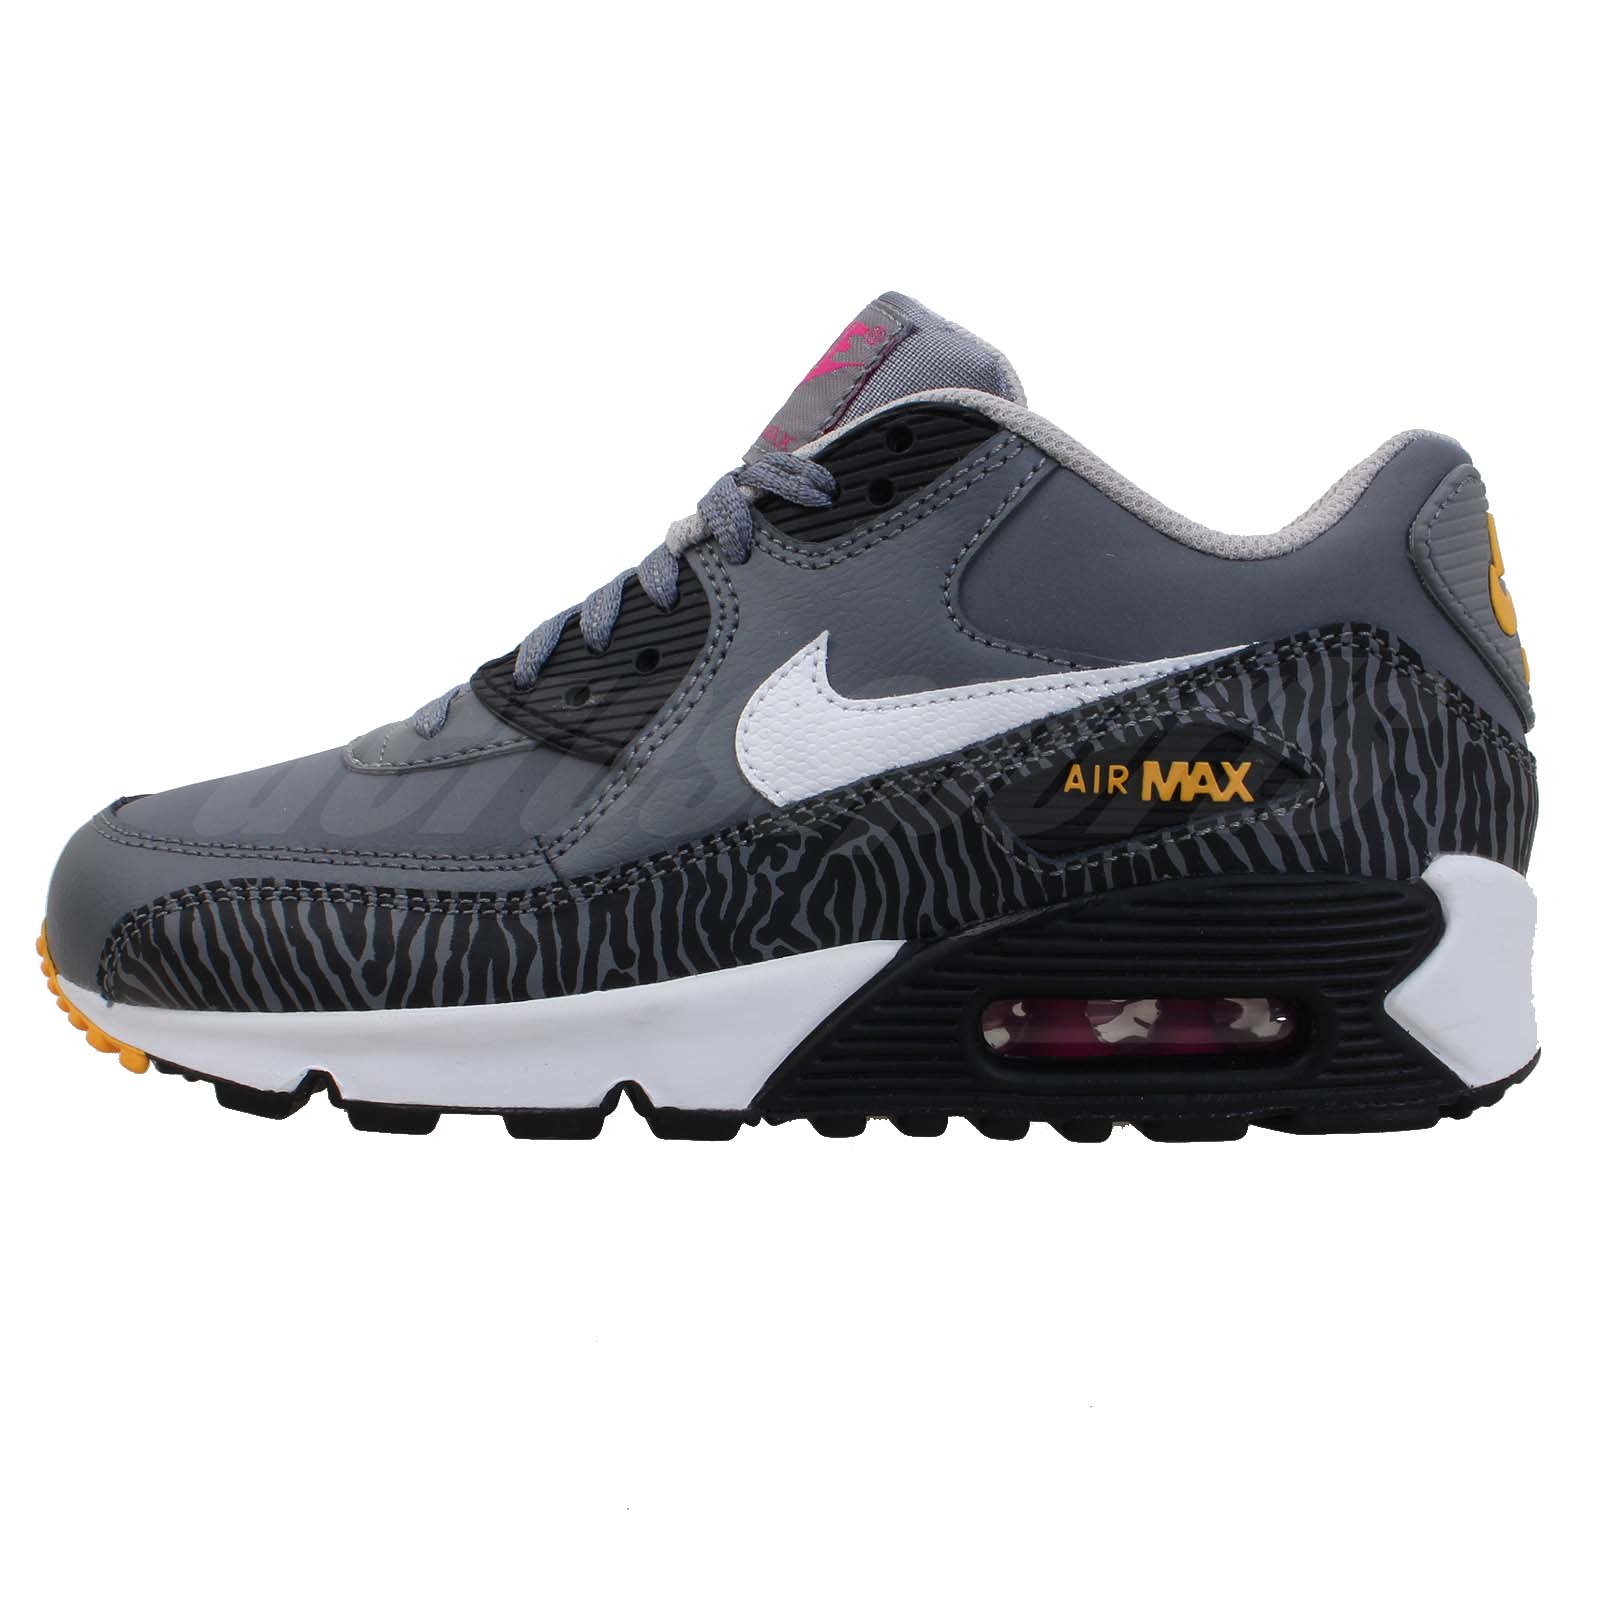 nike air max gs 1 90 95 24 7 boys girls youth womens nsw. Black Bedroom Furniture Sets. Home Design Ideas